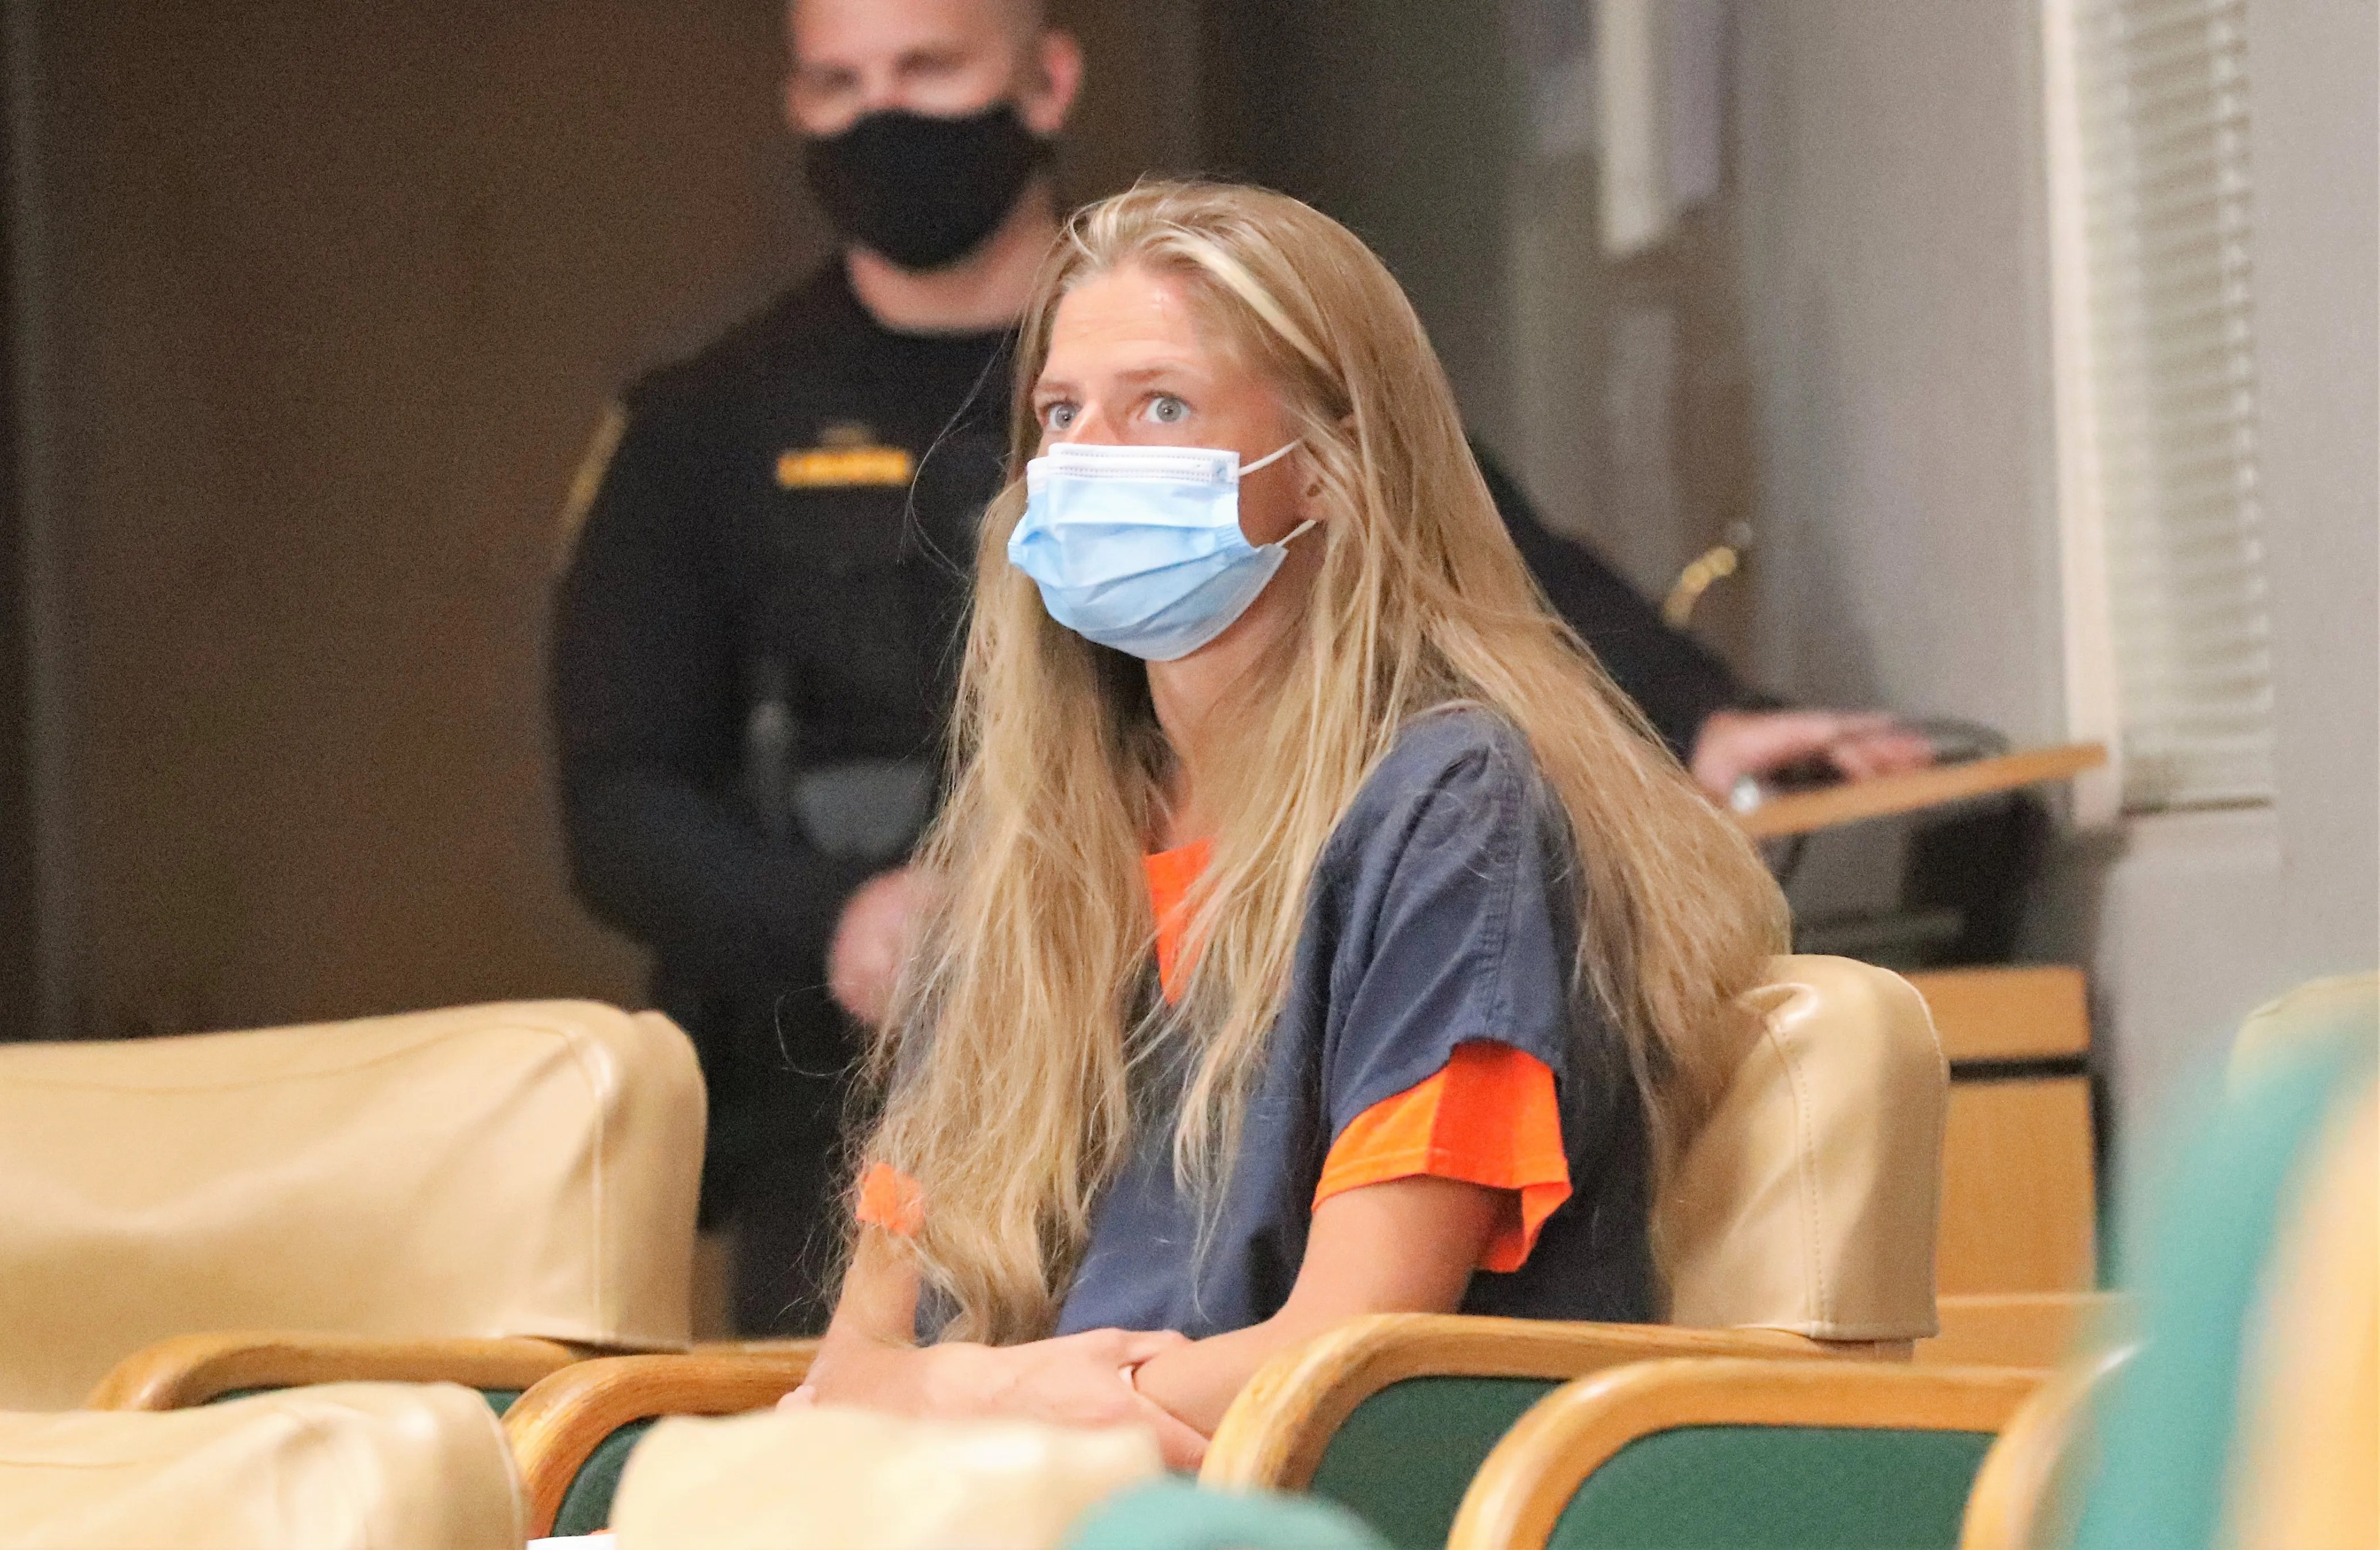 Arson suspect Alexandra Souverneva appears in Shasta County Superior Court on Friday afternoon, September 24, 2021.